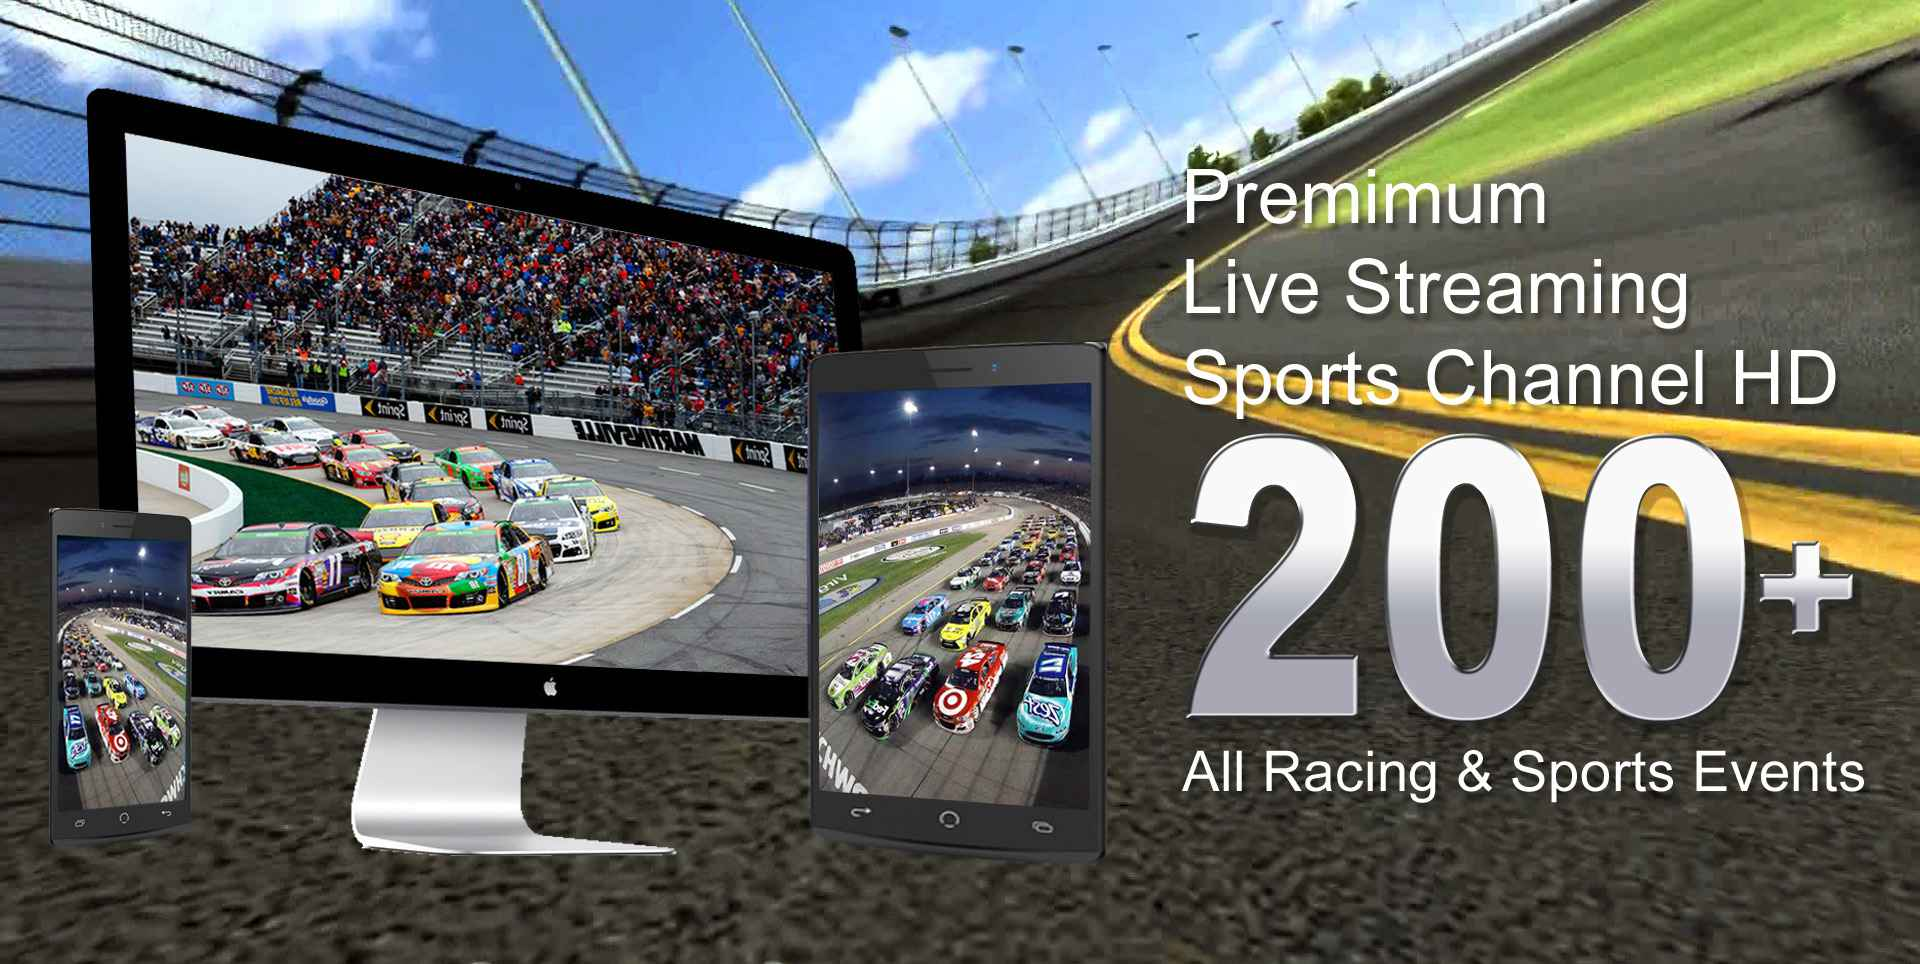 2015 Homestead Ford EcoBoost 400 NASCAR Race Live